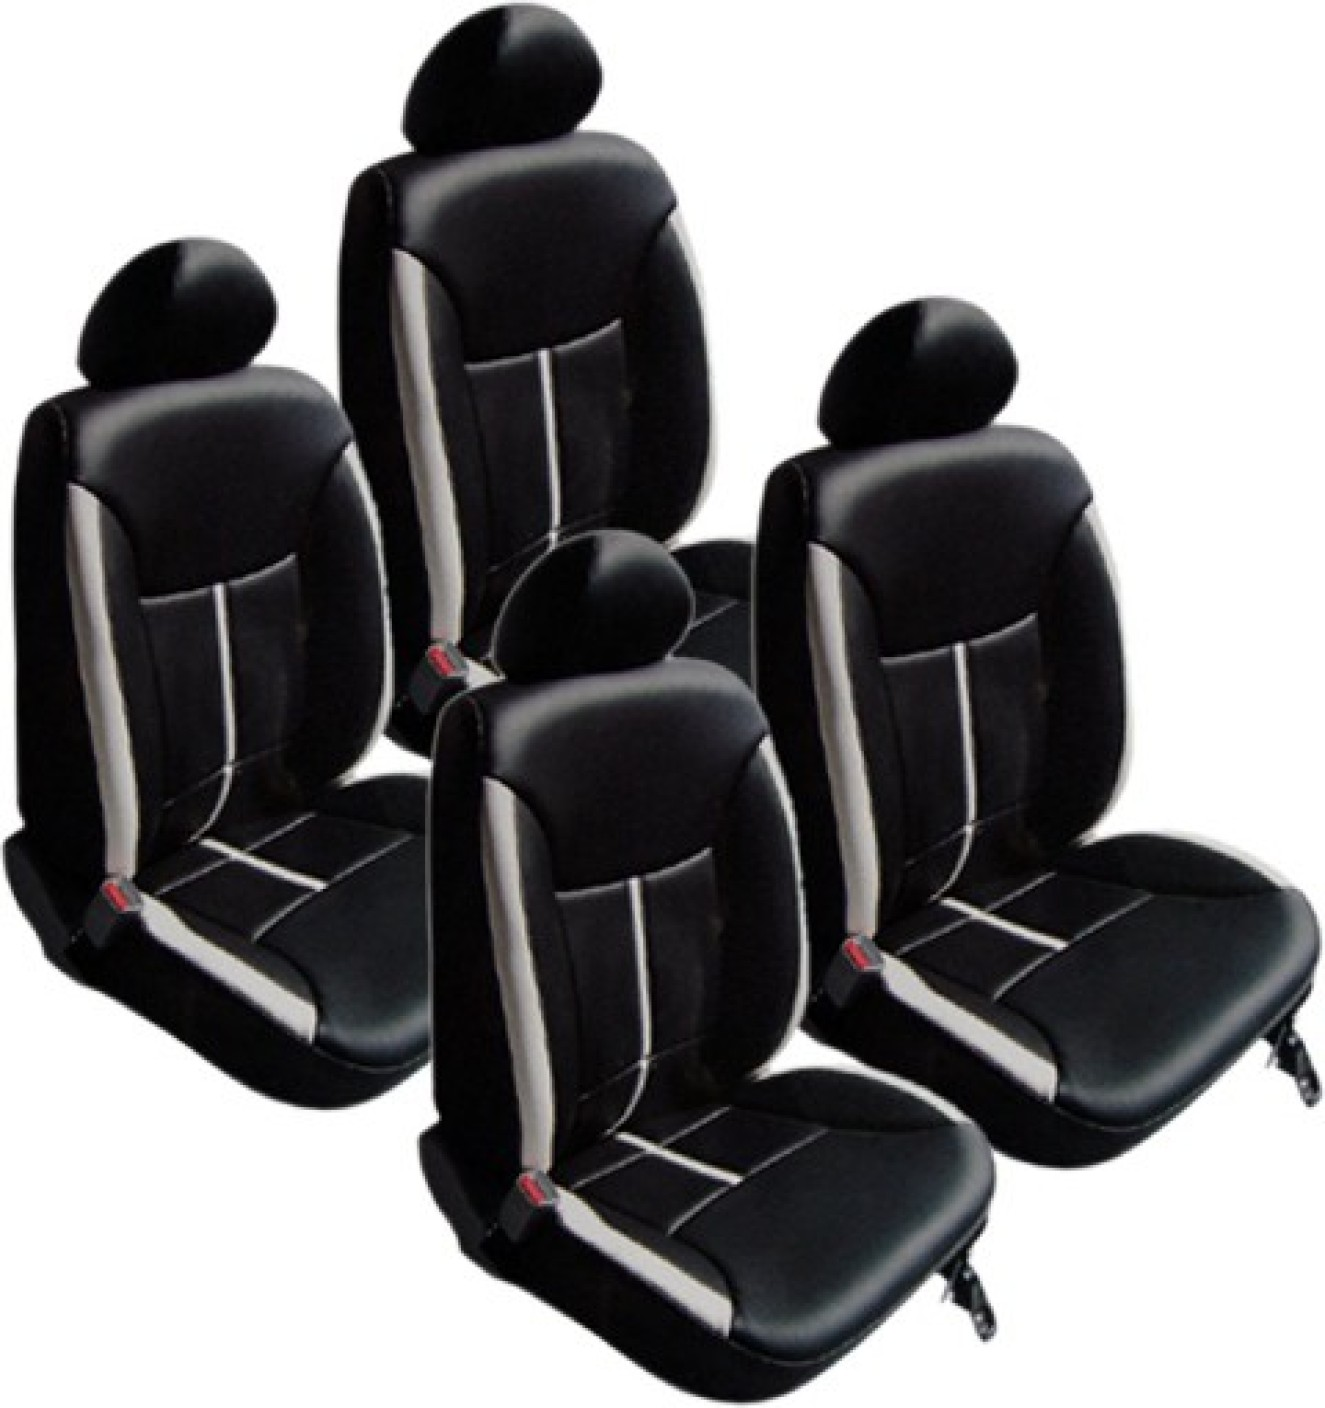 How To Clean Fabric Car Seat Covers